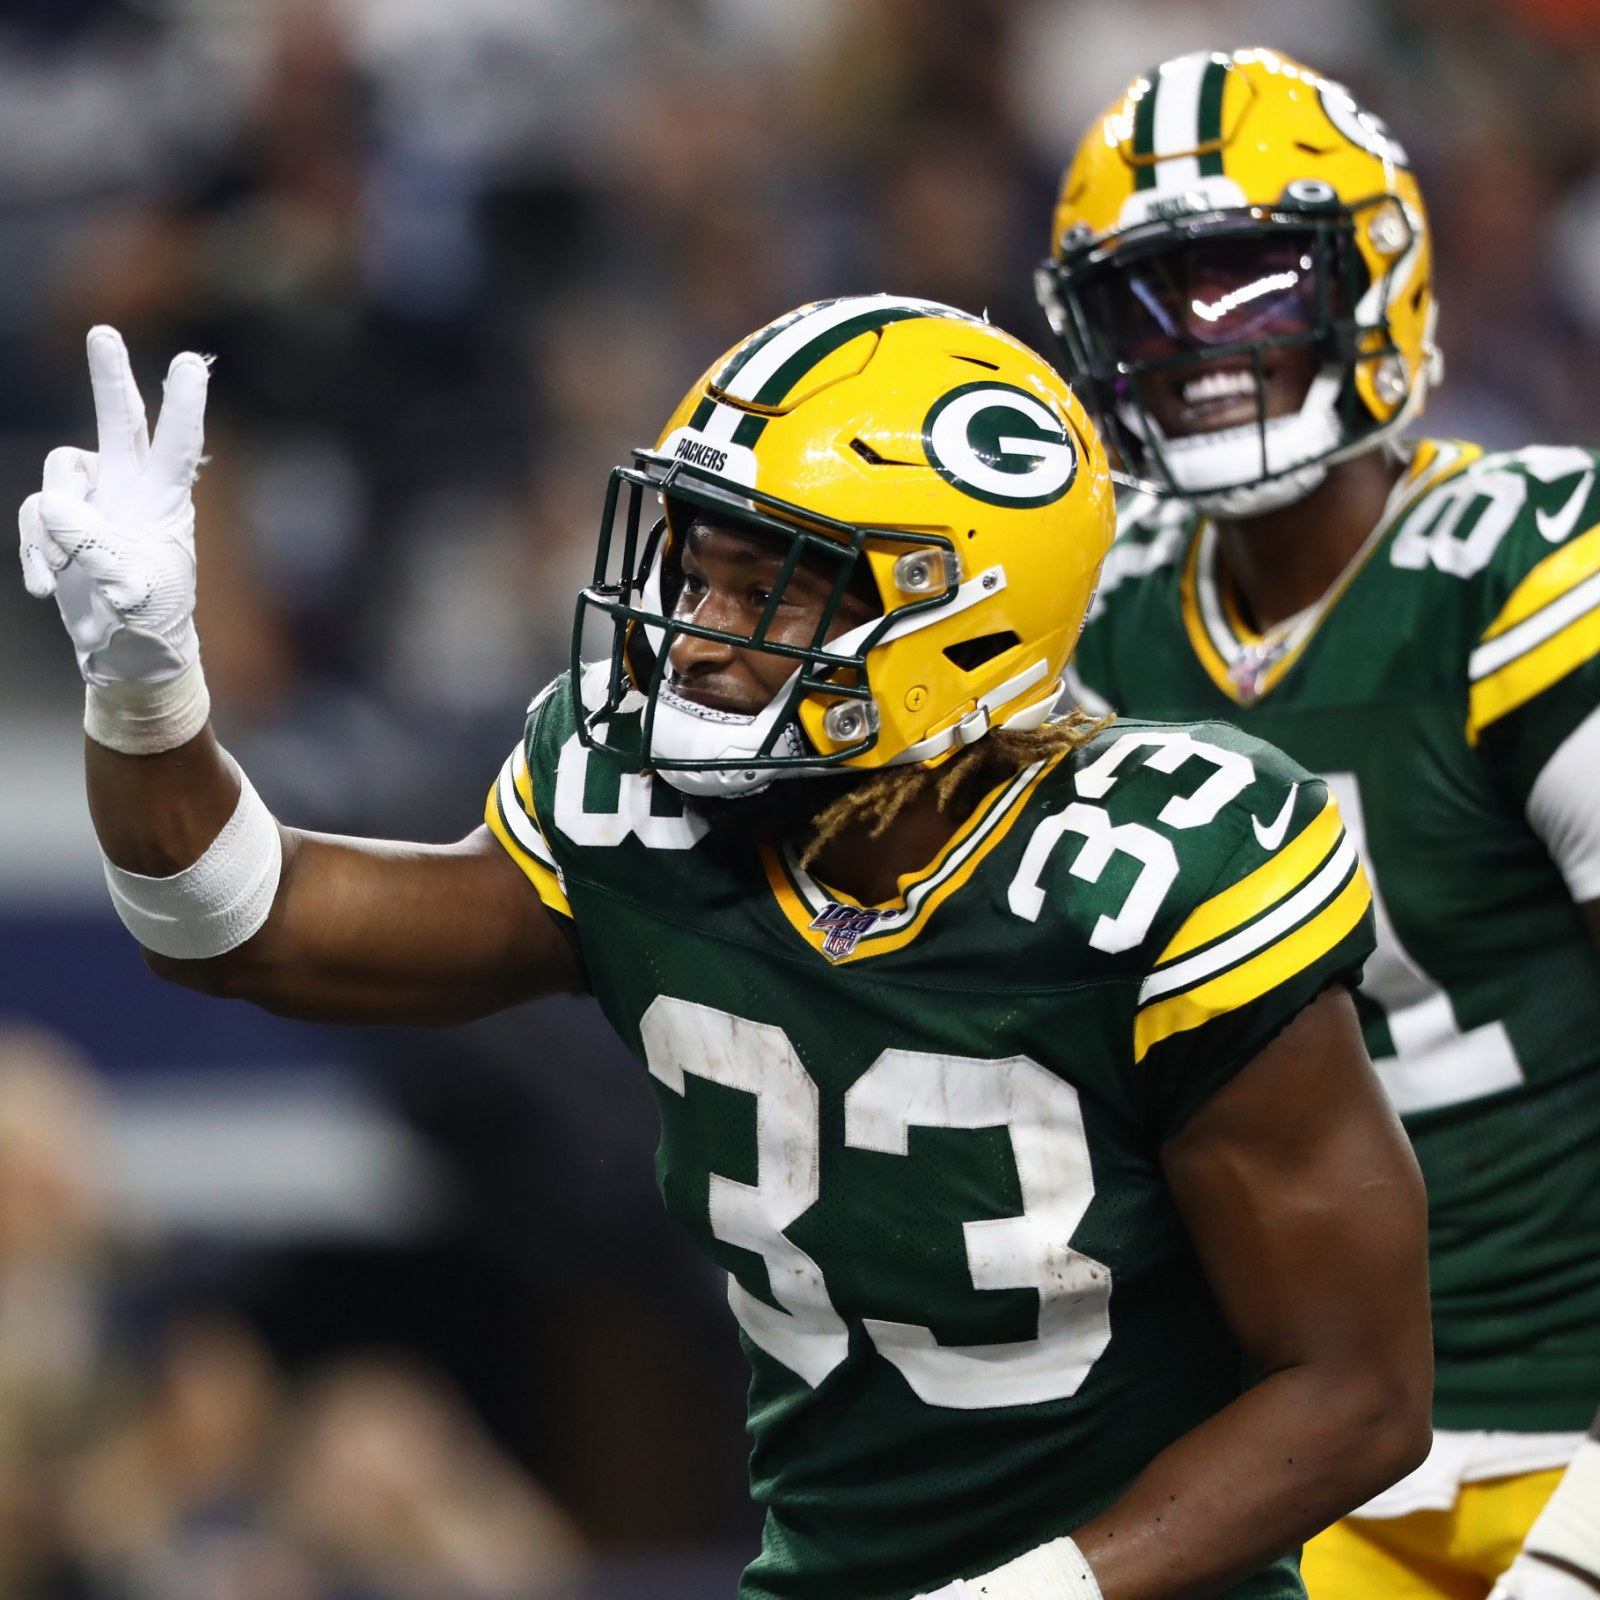 Nfl Monday Night Football 2019 Schedule Where To Watch Detroit Lions Vs Green Bay Packers Tv Channel Live Stream Odds